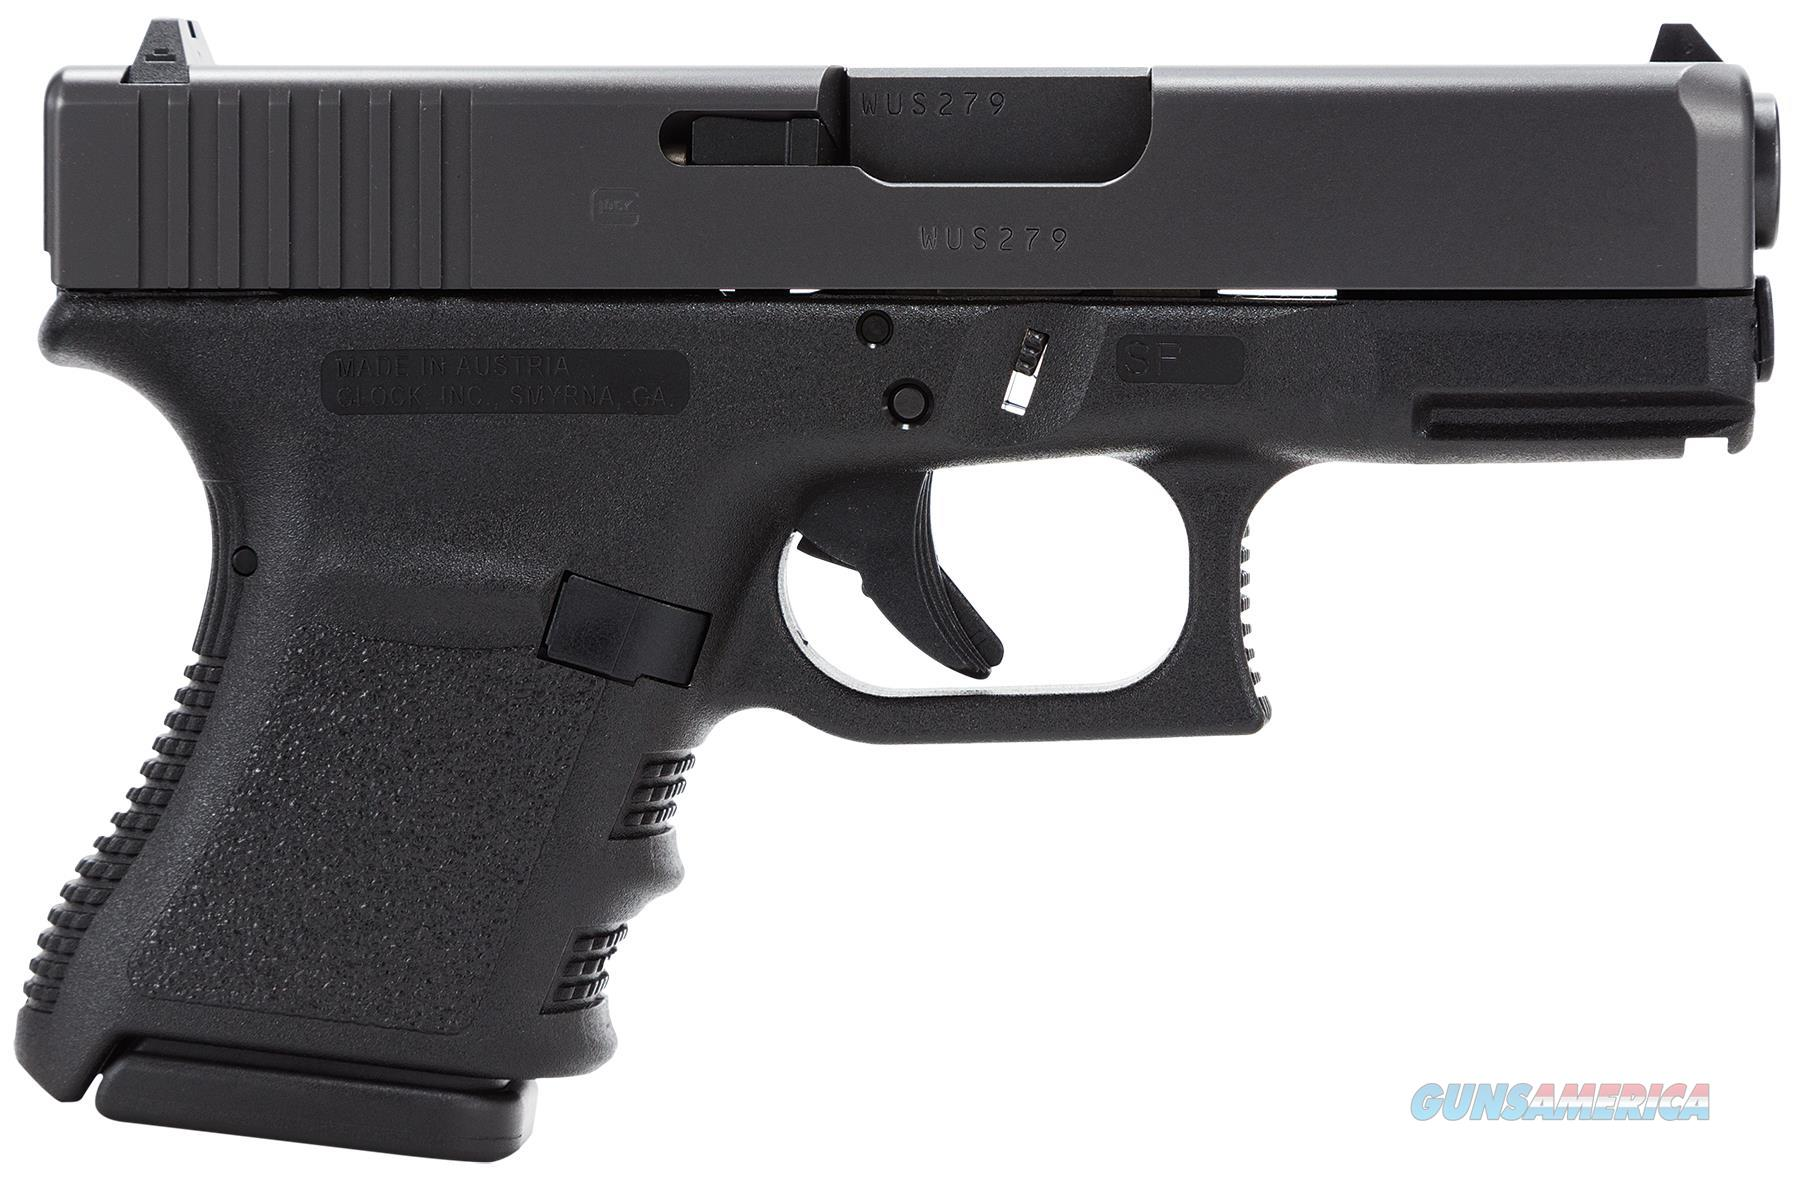 "Glock Pf2950201 G29sf Standard 10Mm 3.78"" 10+1 Fixed Sights Poly Grip/Frame Blk PF2950201  Guns > Pistols > G Misc Pistols"